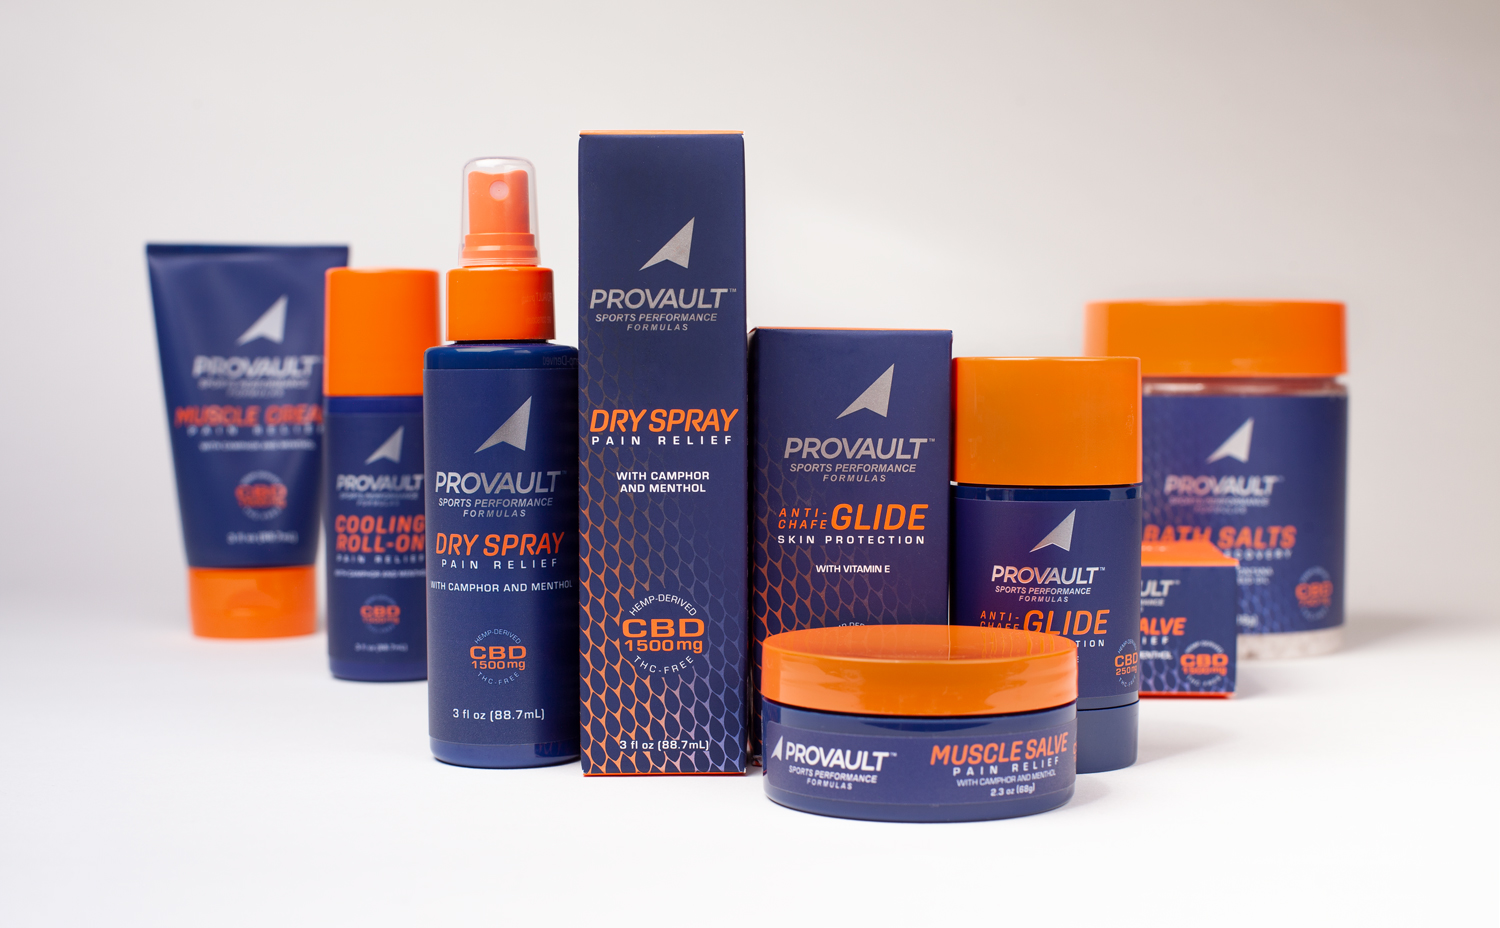 image of Provault packaging